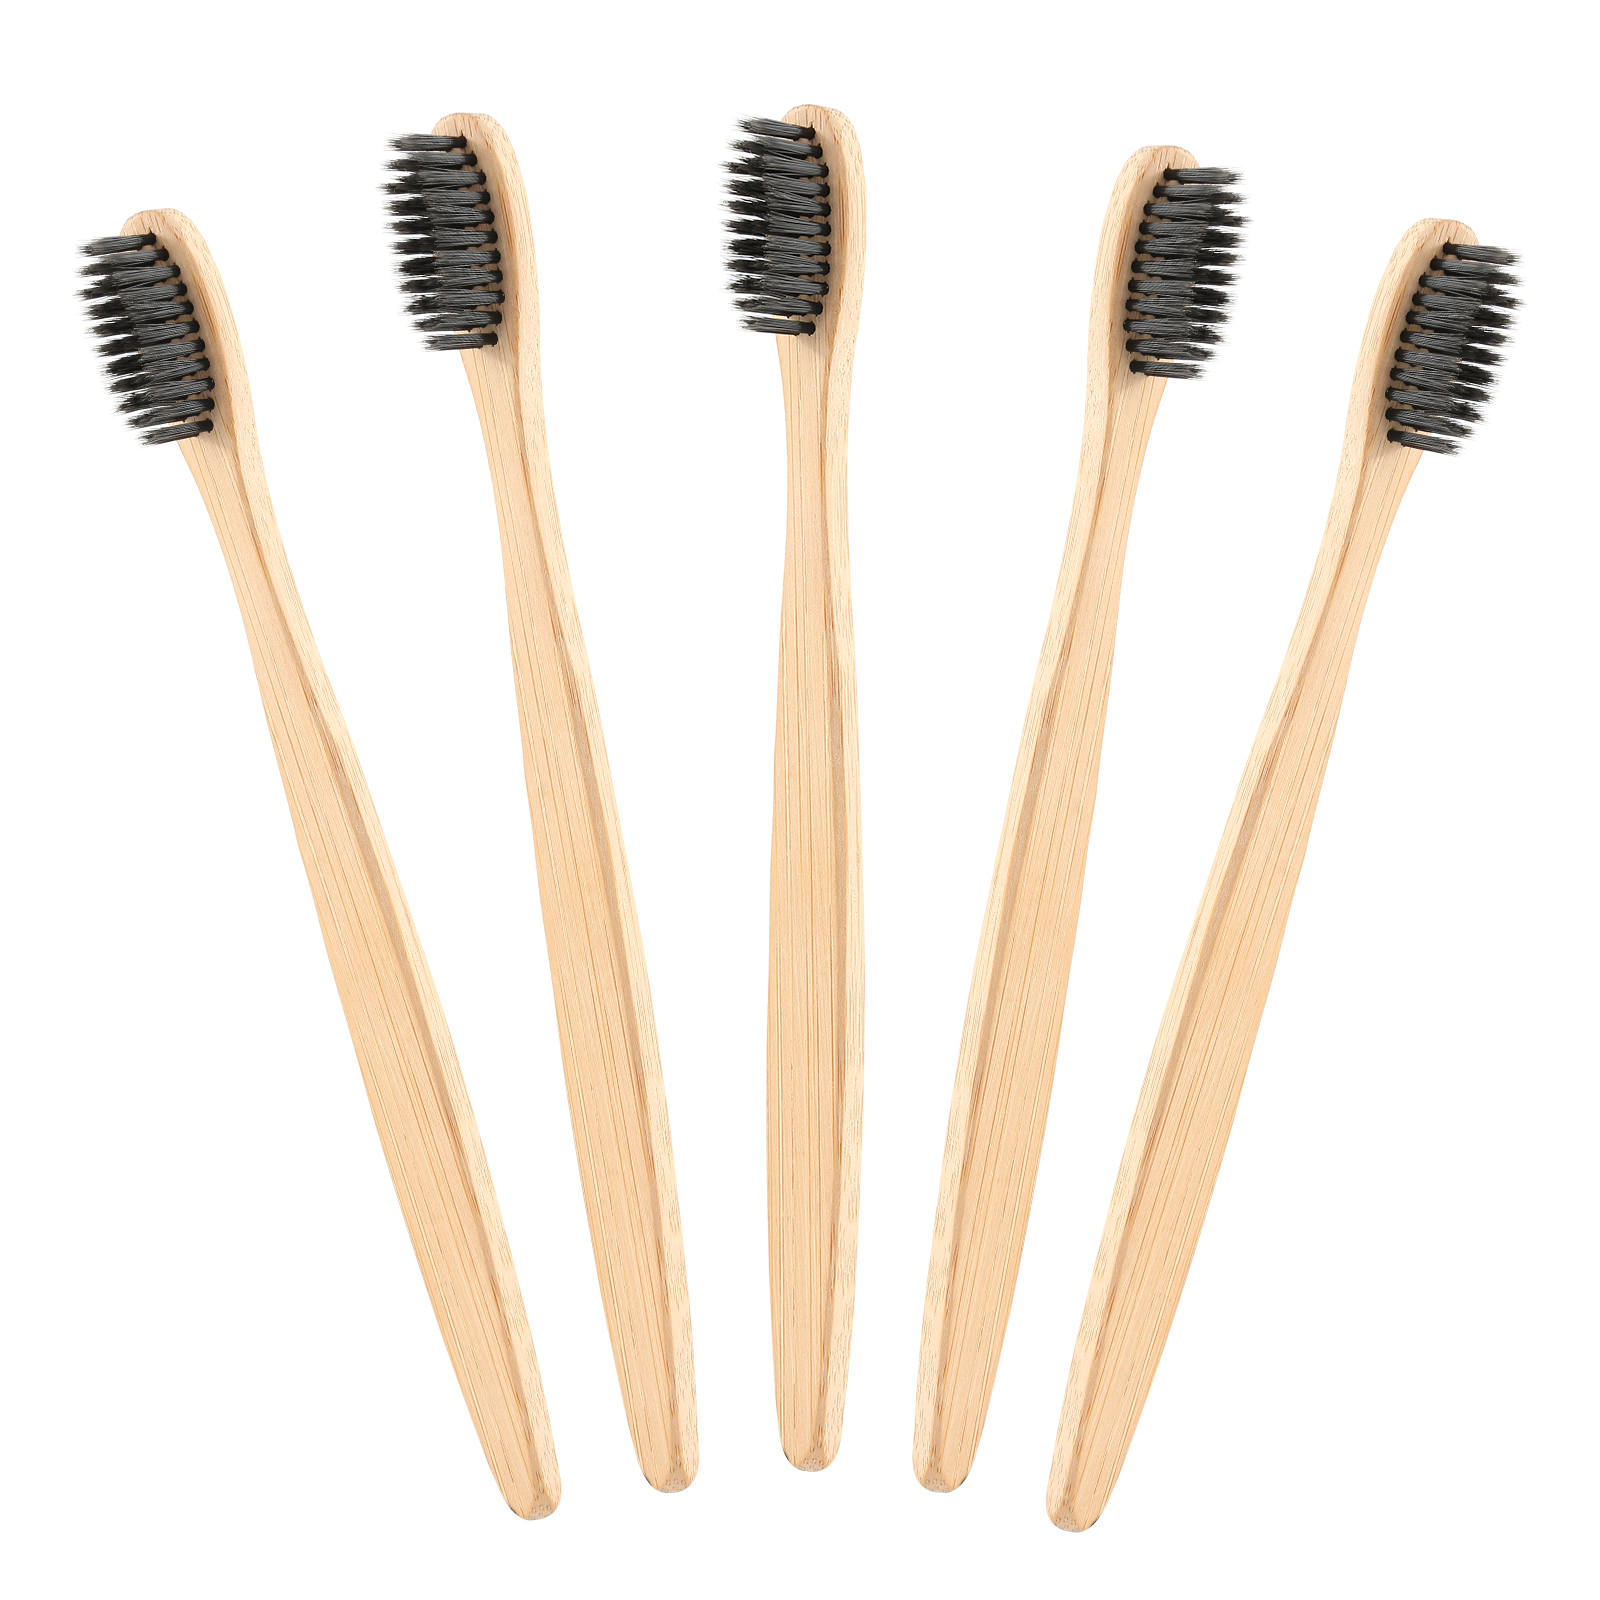 Y&W&F 5Pcs Slim Style Bamboo Wood Toothbrush Bamboo Novelty Charcoal Toothbrush Soft-bristle Nylon Wooden Handle image